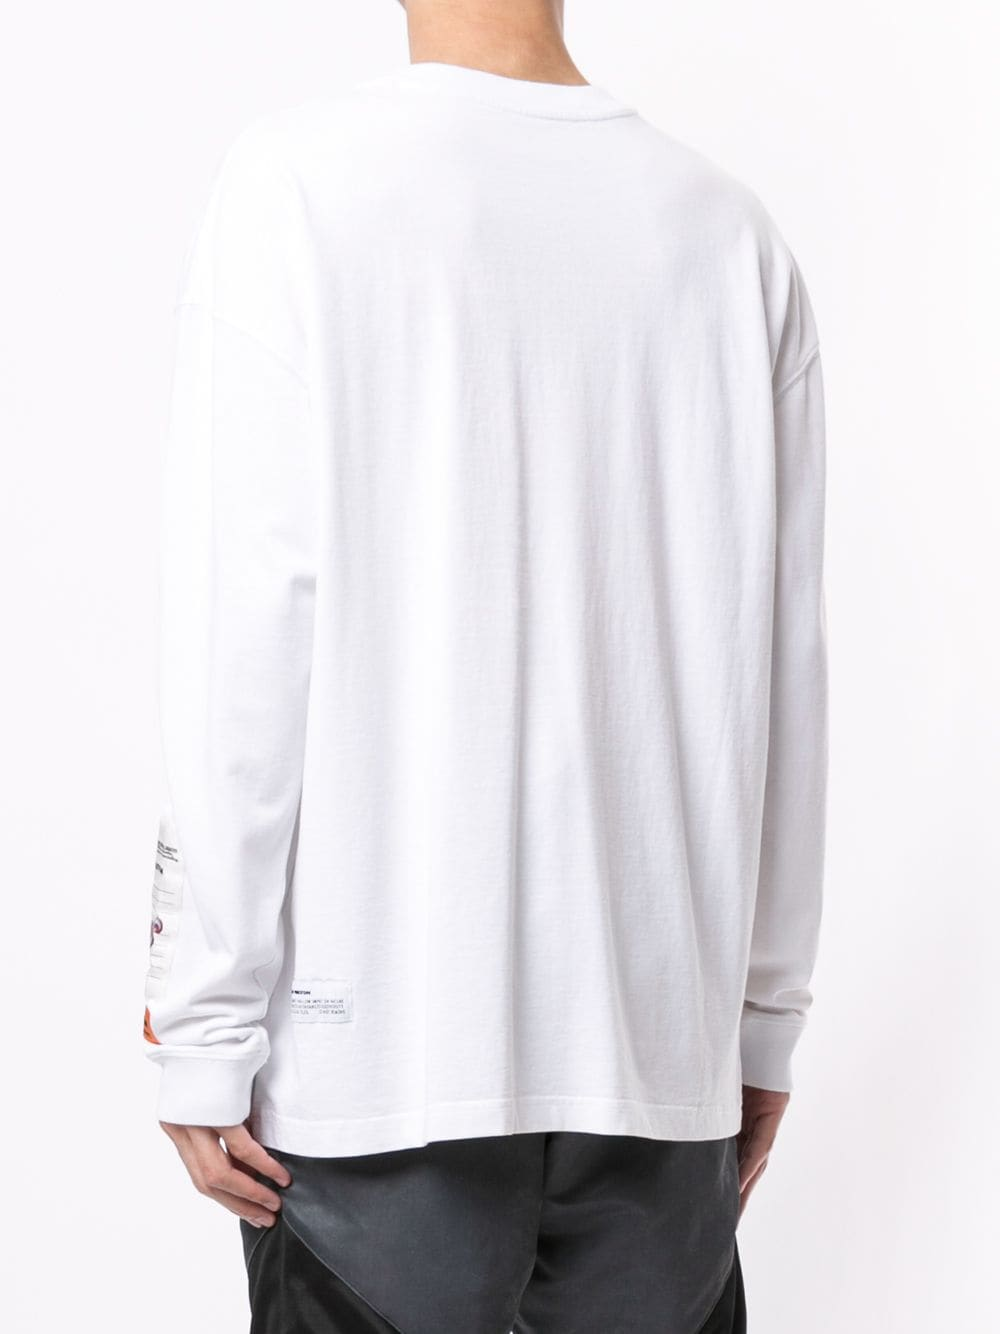 HERON PRESTON MEN LS T-SHIRT REG KS HERON